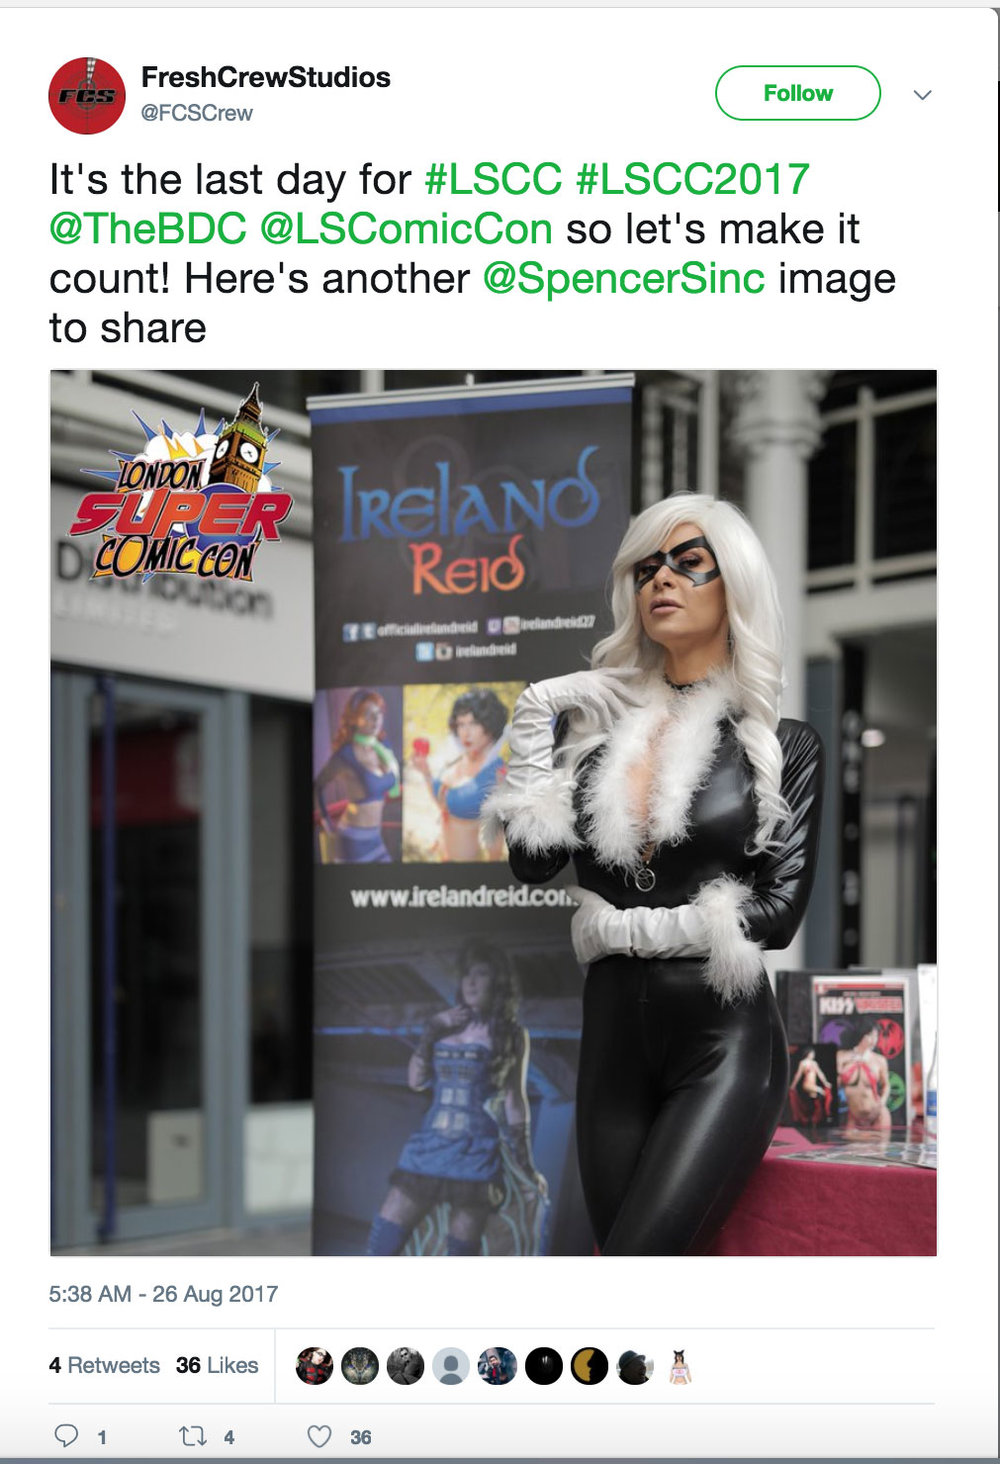 FreshPass image captured and used at London Super Comic Con